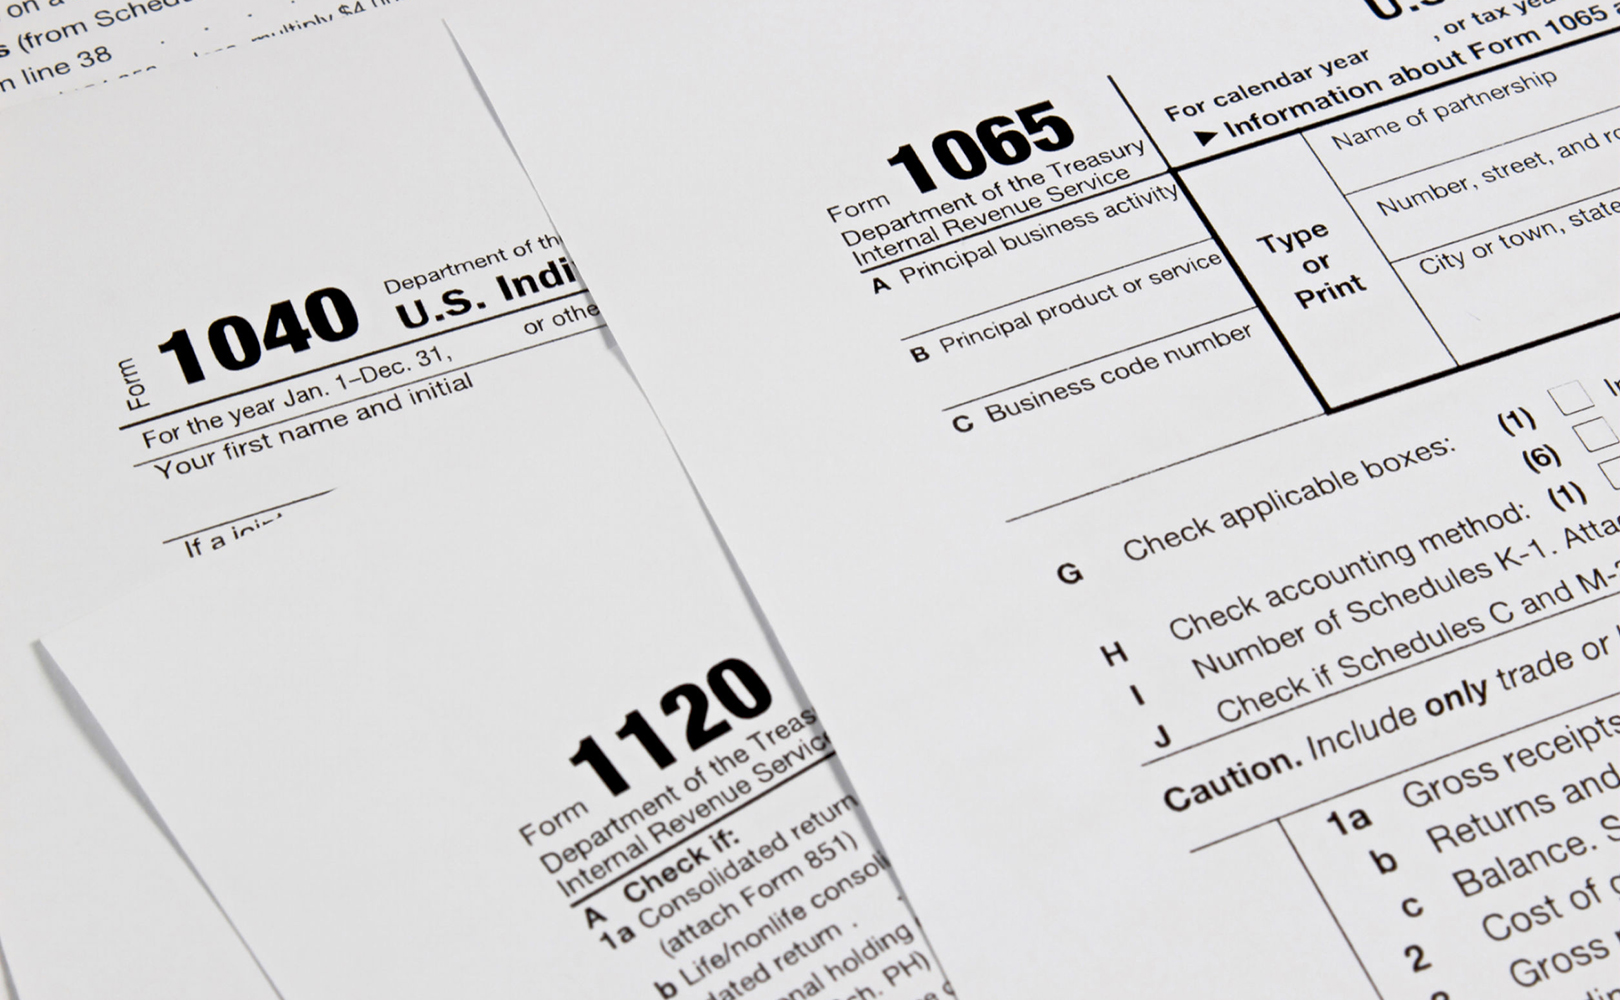 Tax forms 1065 & 1120